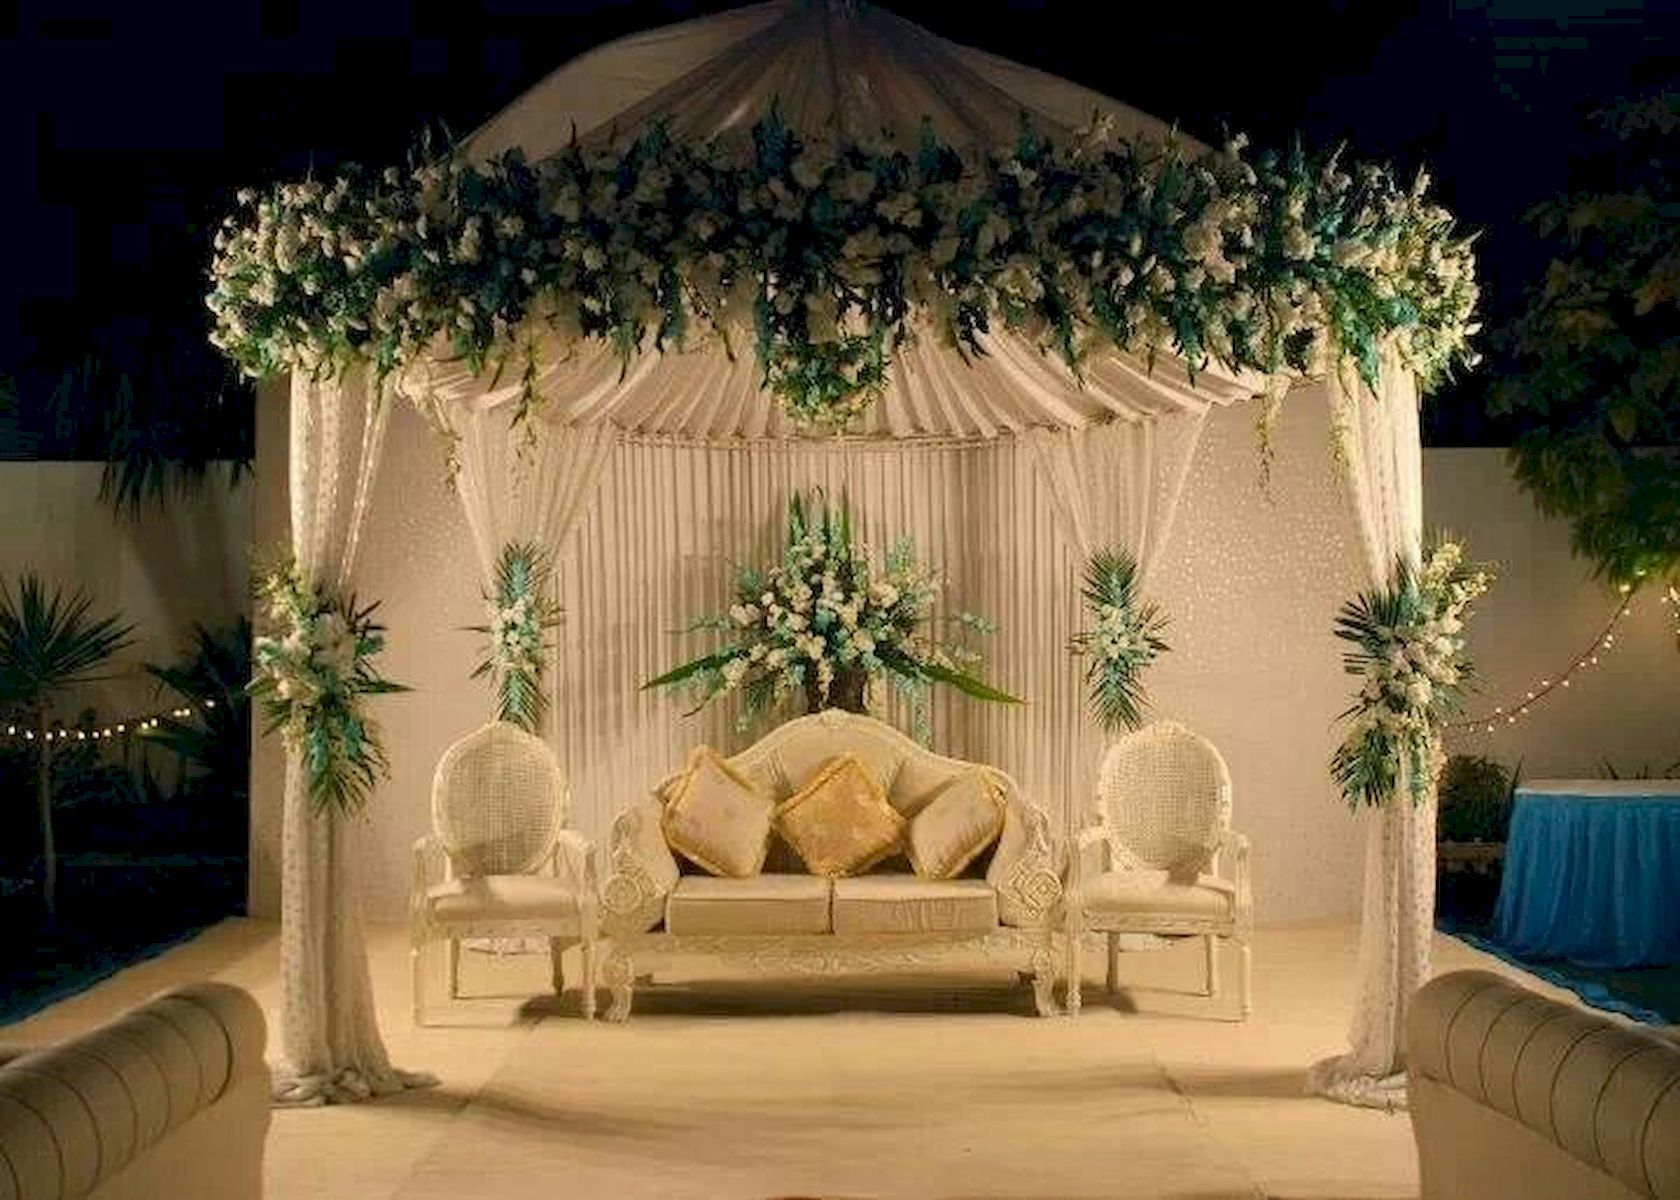 Wedding decorations backdrop  Outdoor Wedding Decoration Ideas  jihanshanum PARTY IDEAS   PARTY